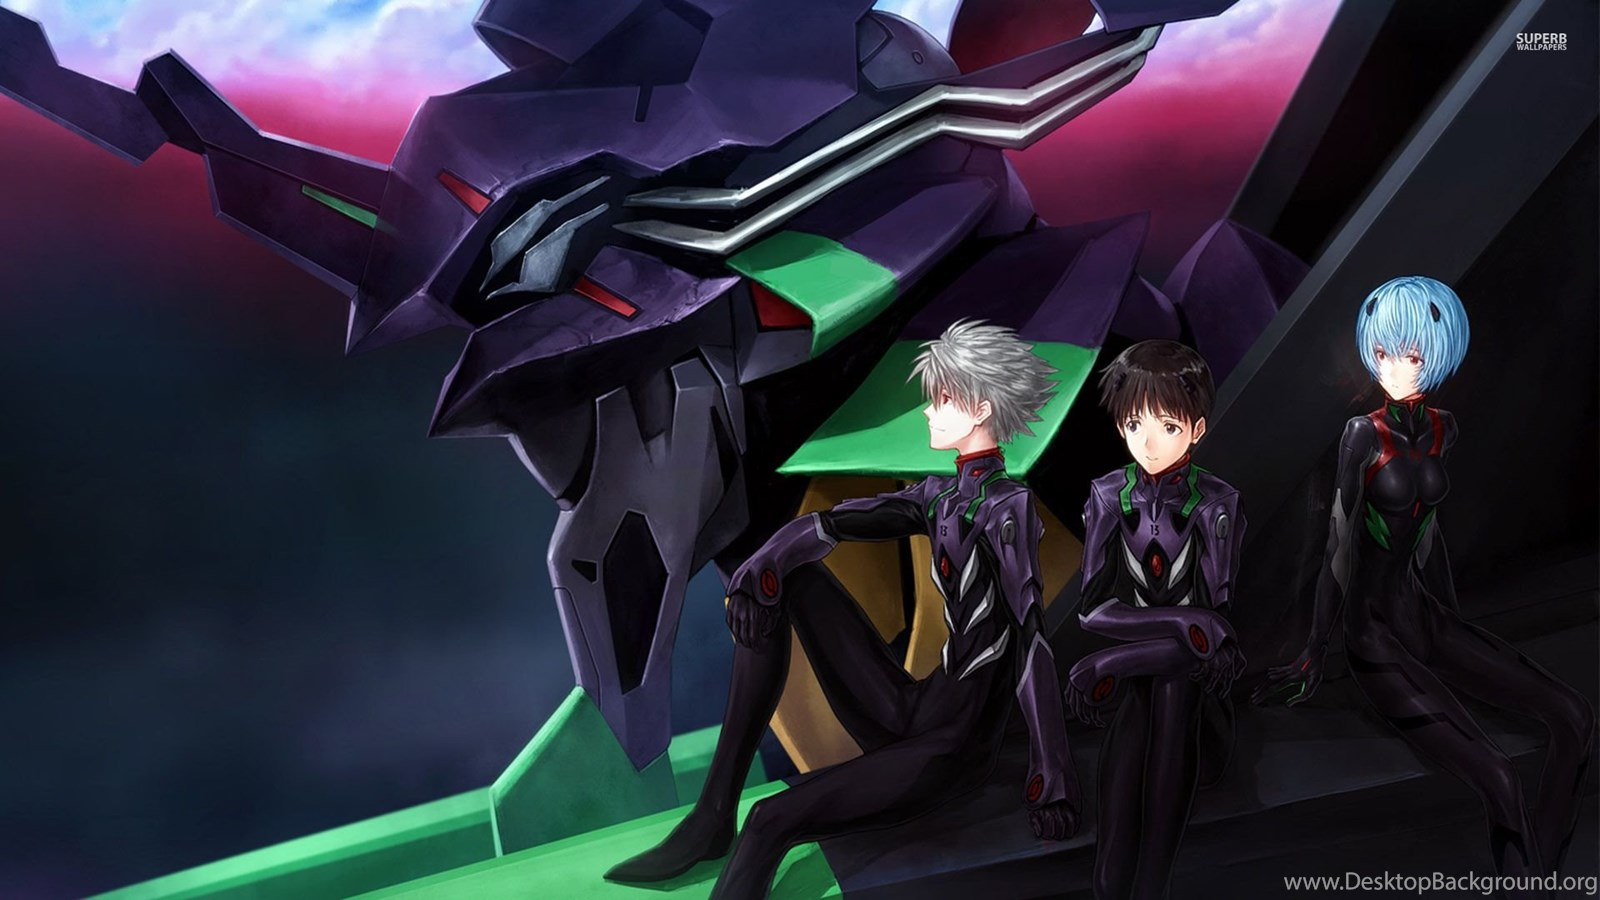 Neon Genesis Evangelion Wallpapers Anime Wallpapers Desktop Background